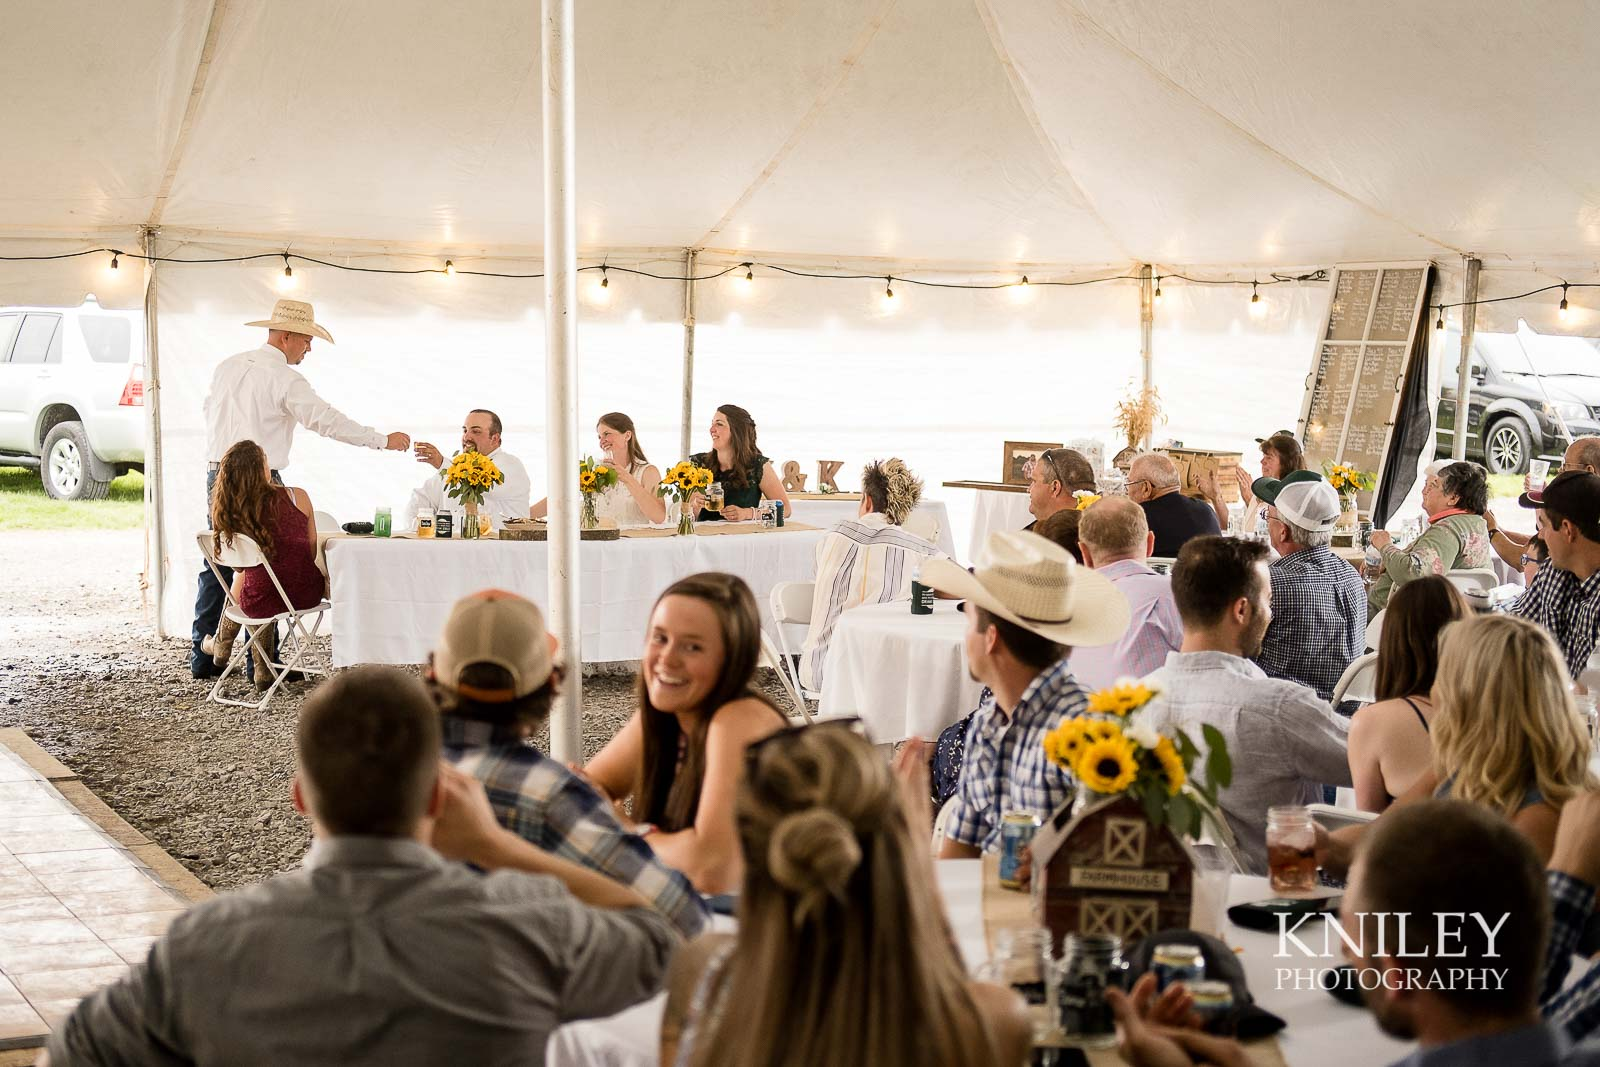 55-Western-New-York-farm-wedding-Kniley-Photography.jpg